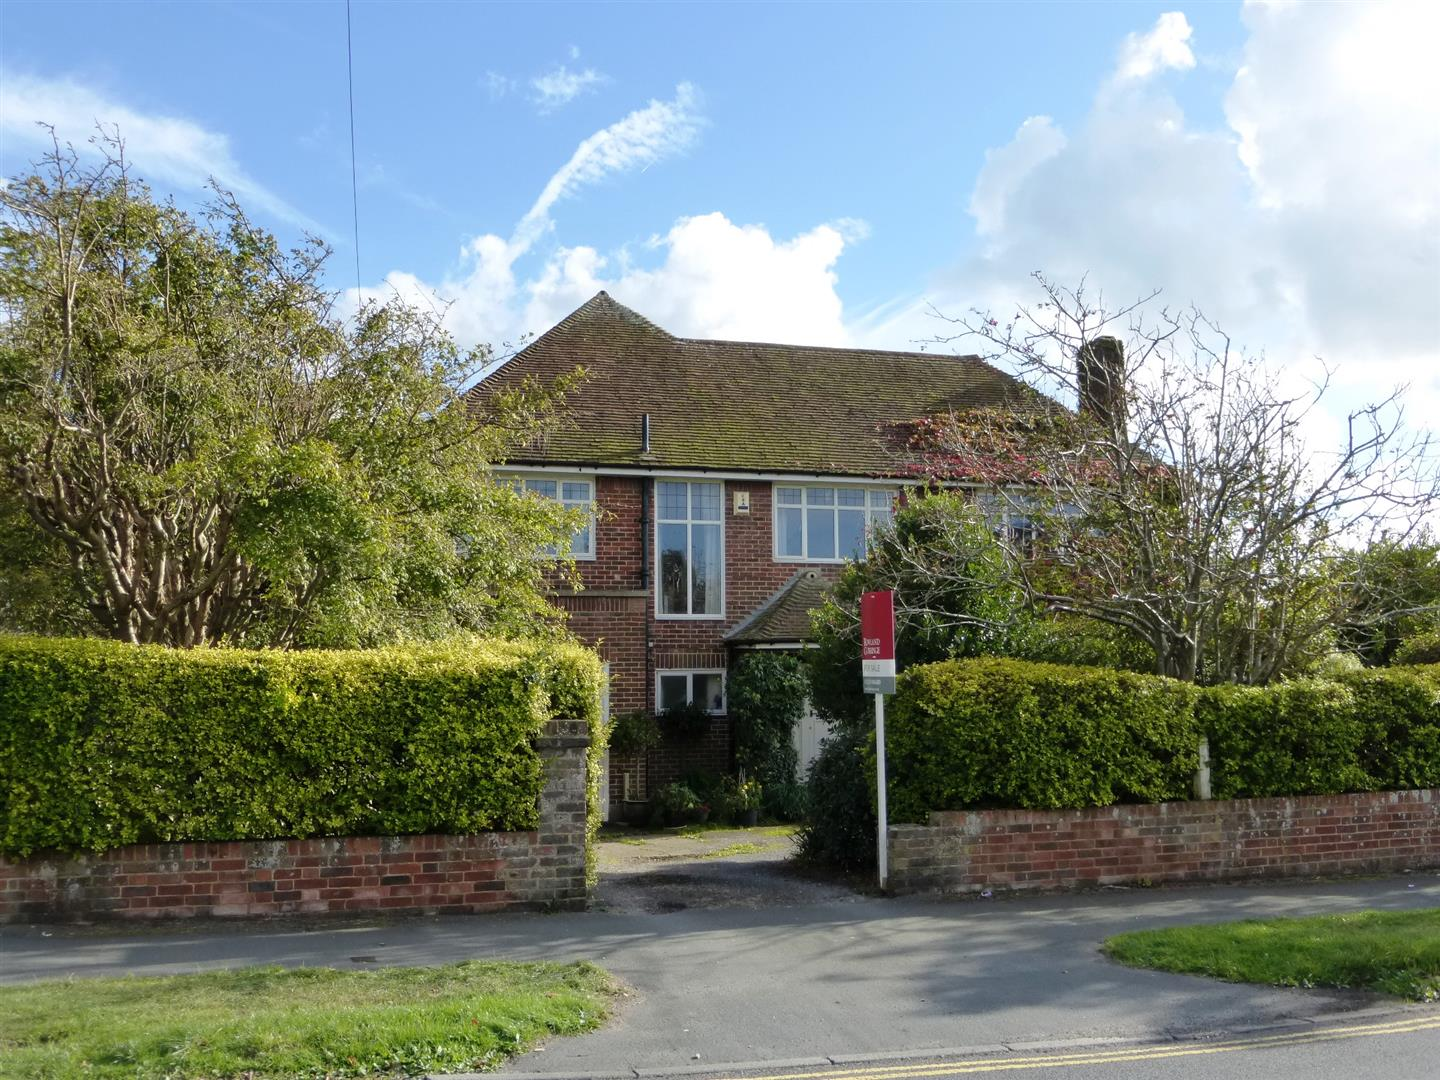 http://rowlandgorringe.co.uk/property-details/?veb